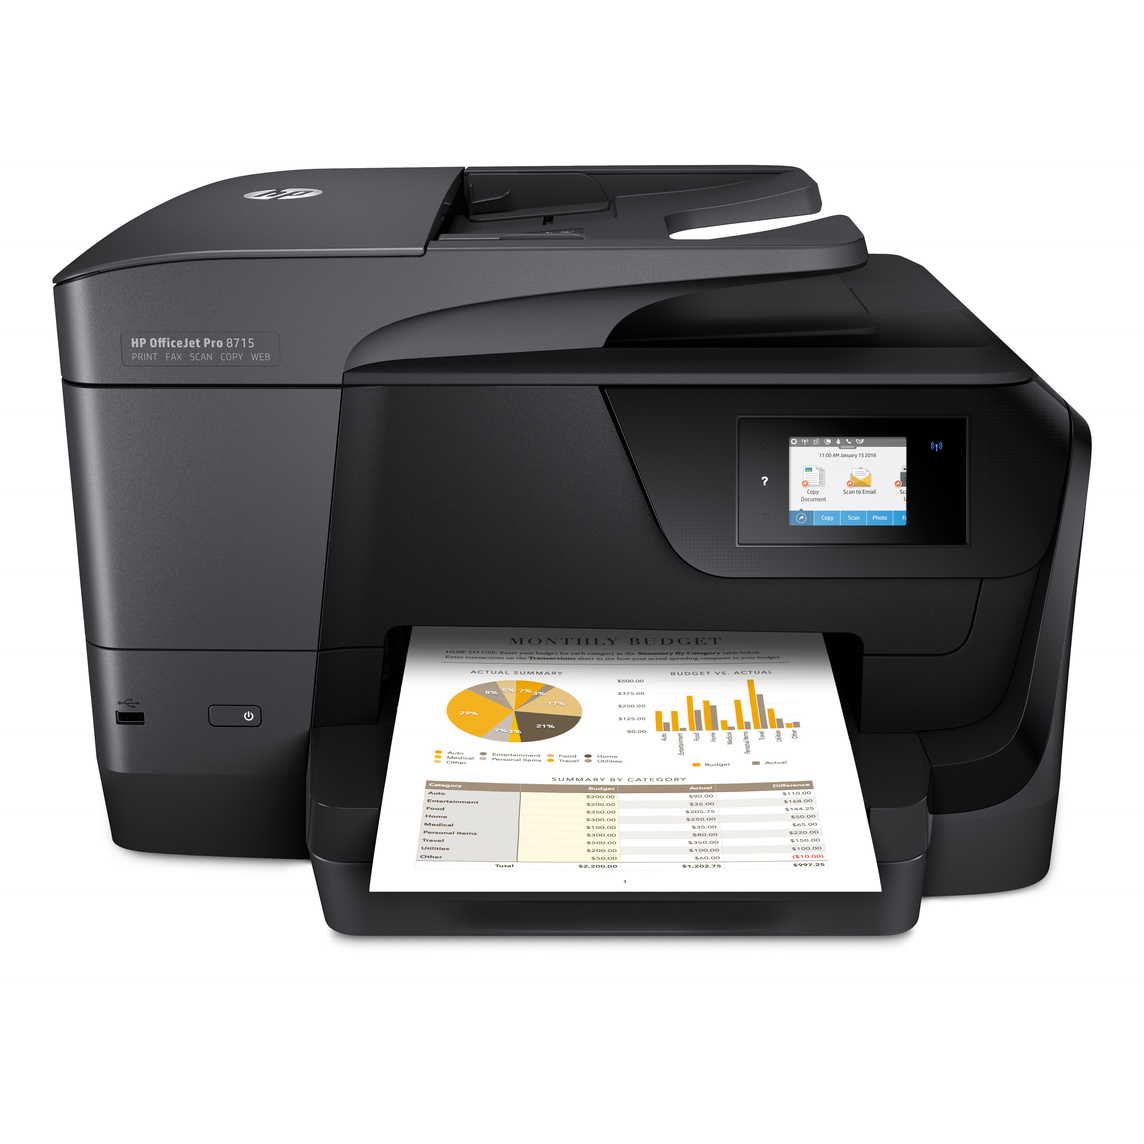 HP OfficeJet Pro 8715 e-All-in-One Printer